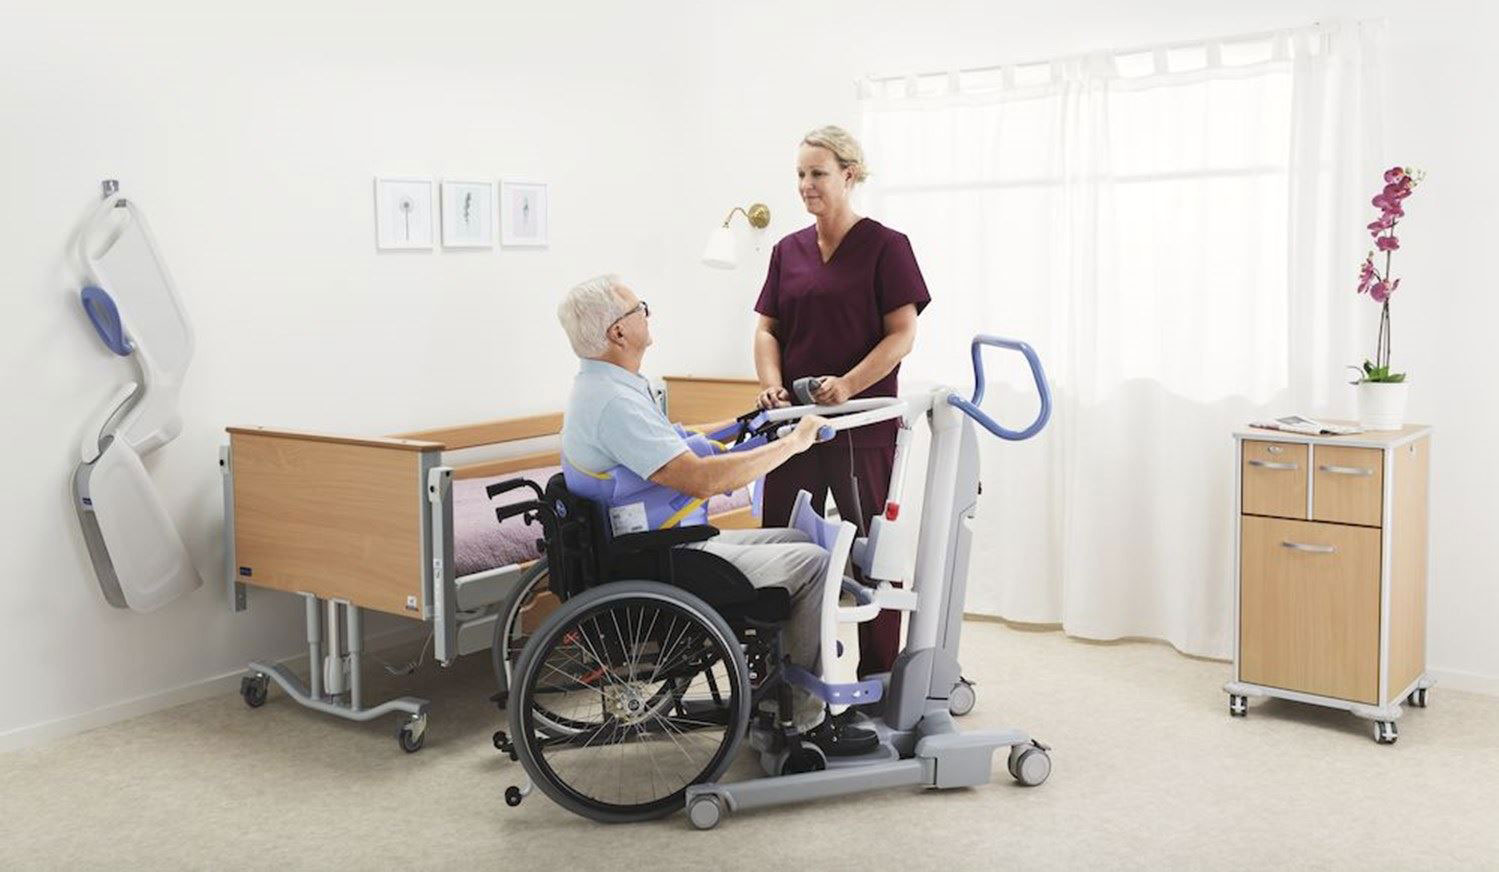 Promoting mobility amongpatients and residents in care facilities is critical for healthy daily lives